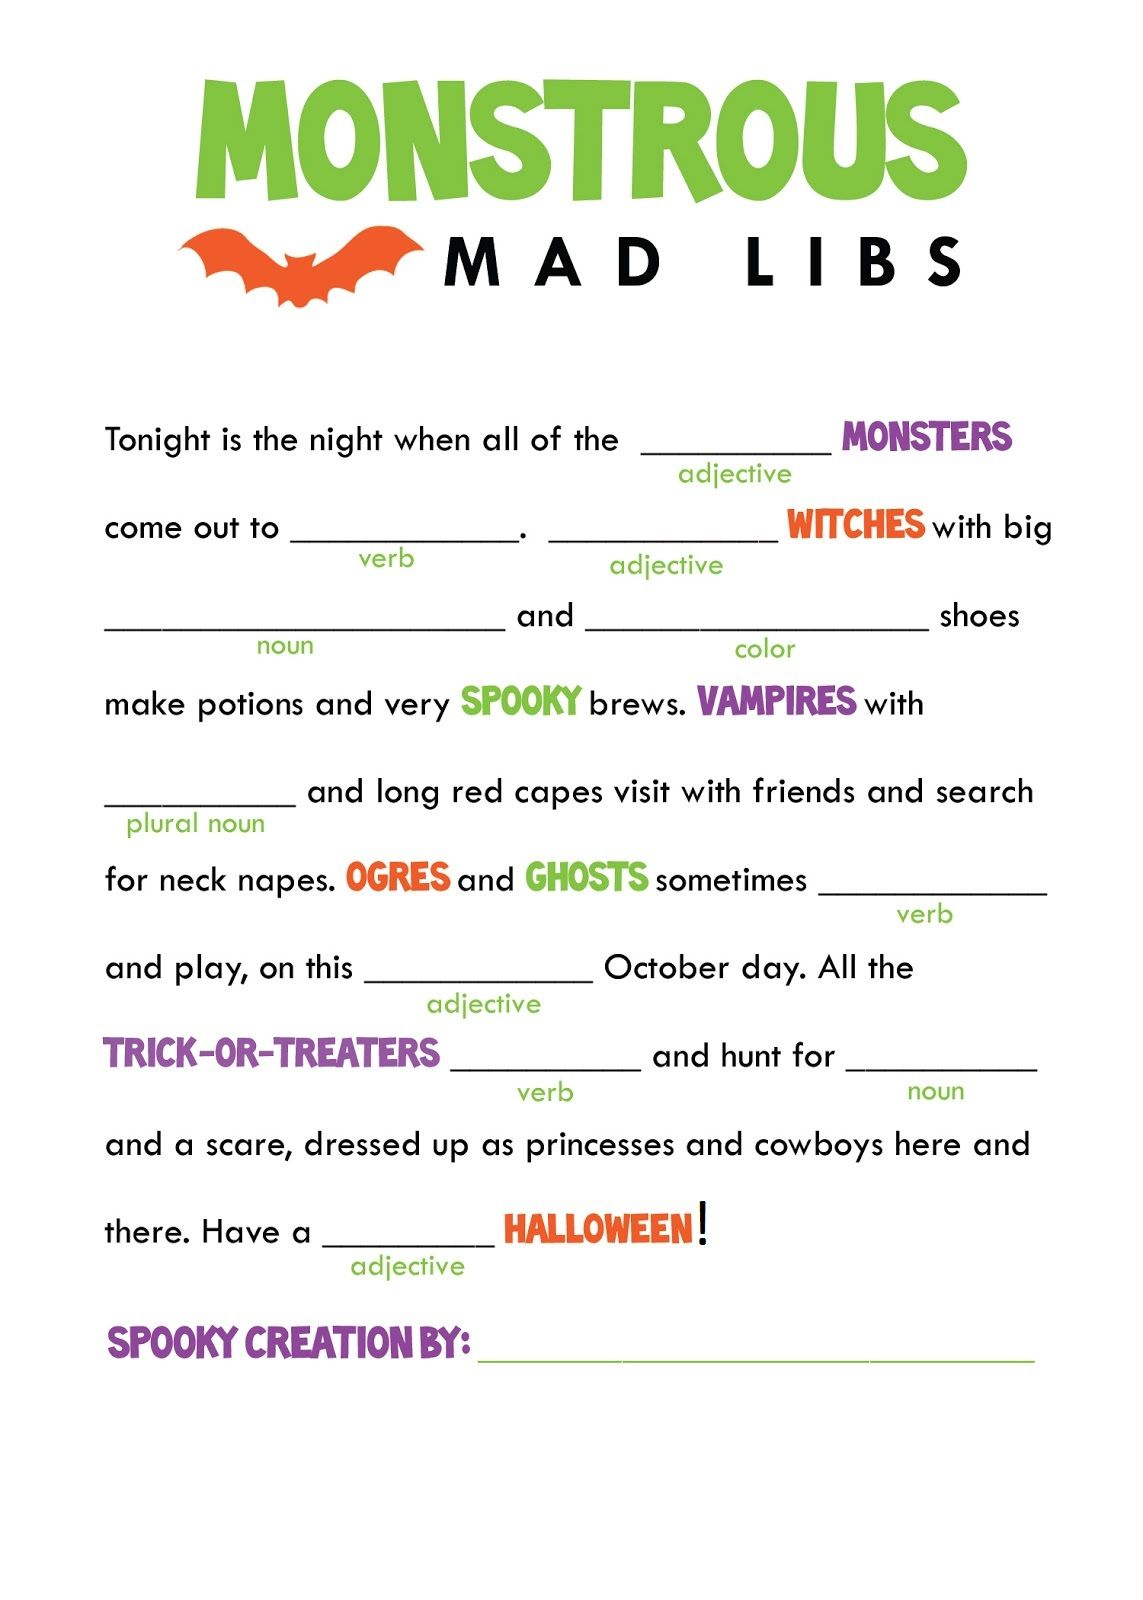 This is a graphic of Monster Mad Libs for Kids Printable